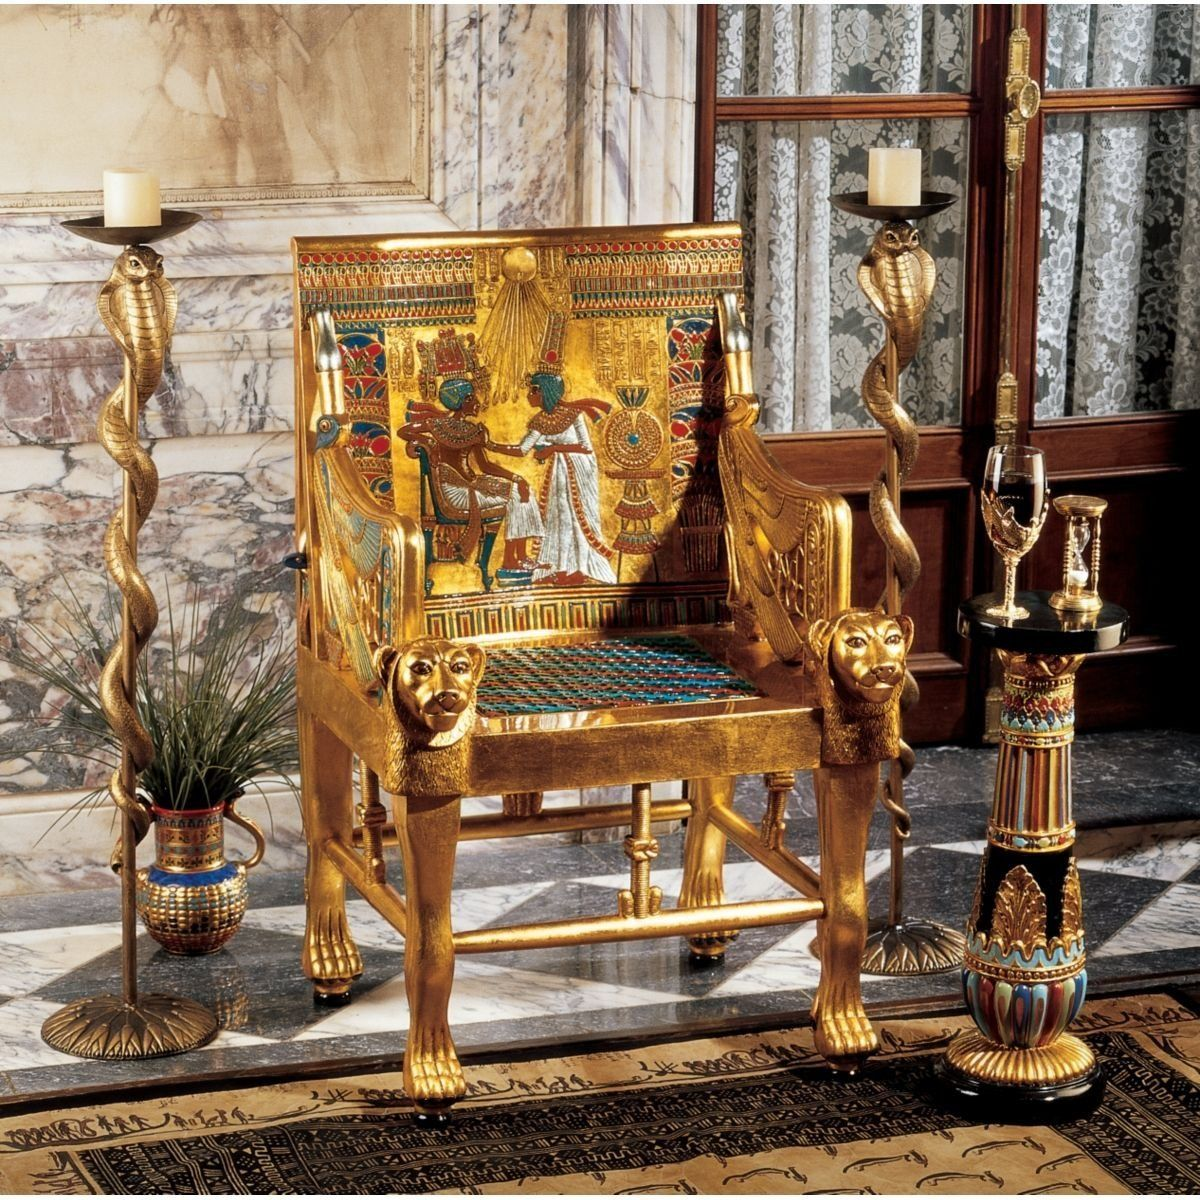 Ancient egyptian furniture - Find This Pin And More On Ancient Egyptian Art Decor